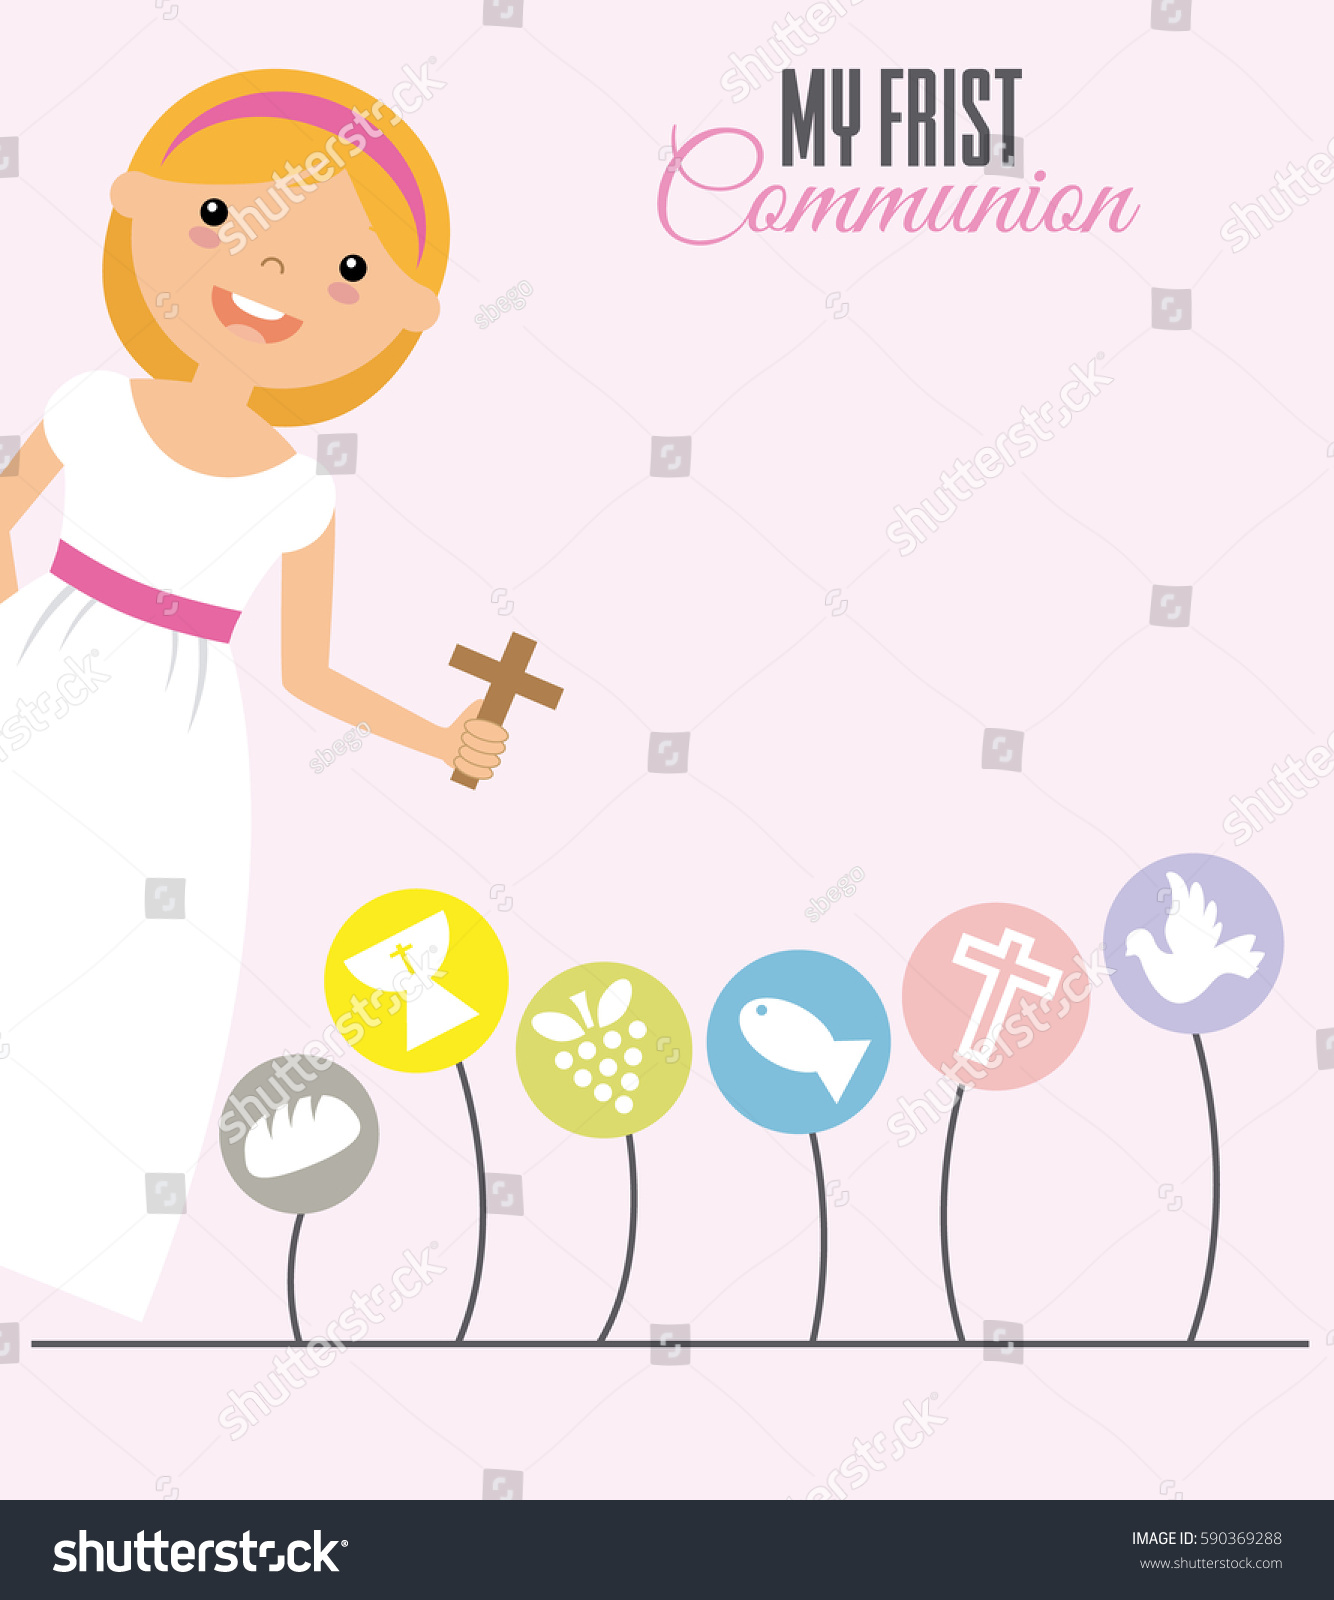 Uncategorized Girlspace my first communion girl space text stock vector 590369288 for text